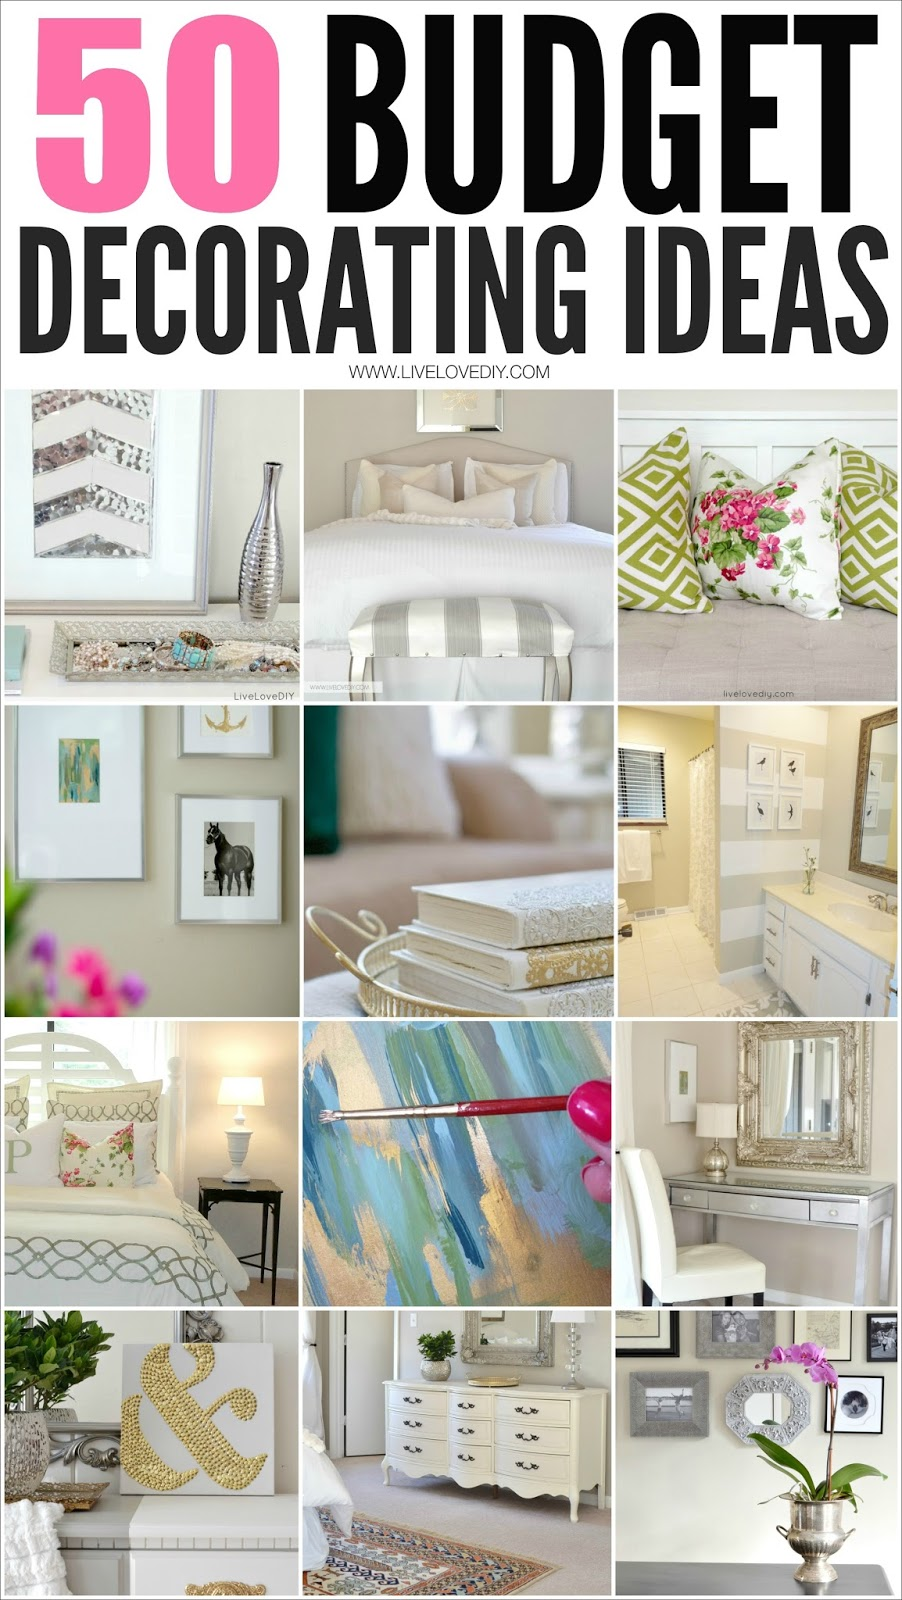 50 amazing budget decorating tips everyone should know i - Budget room decorating ideas ...